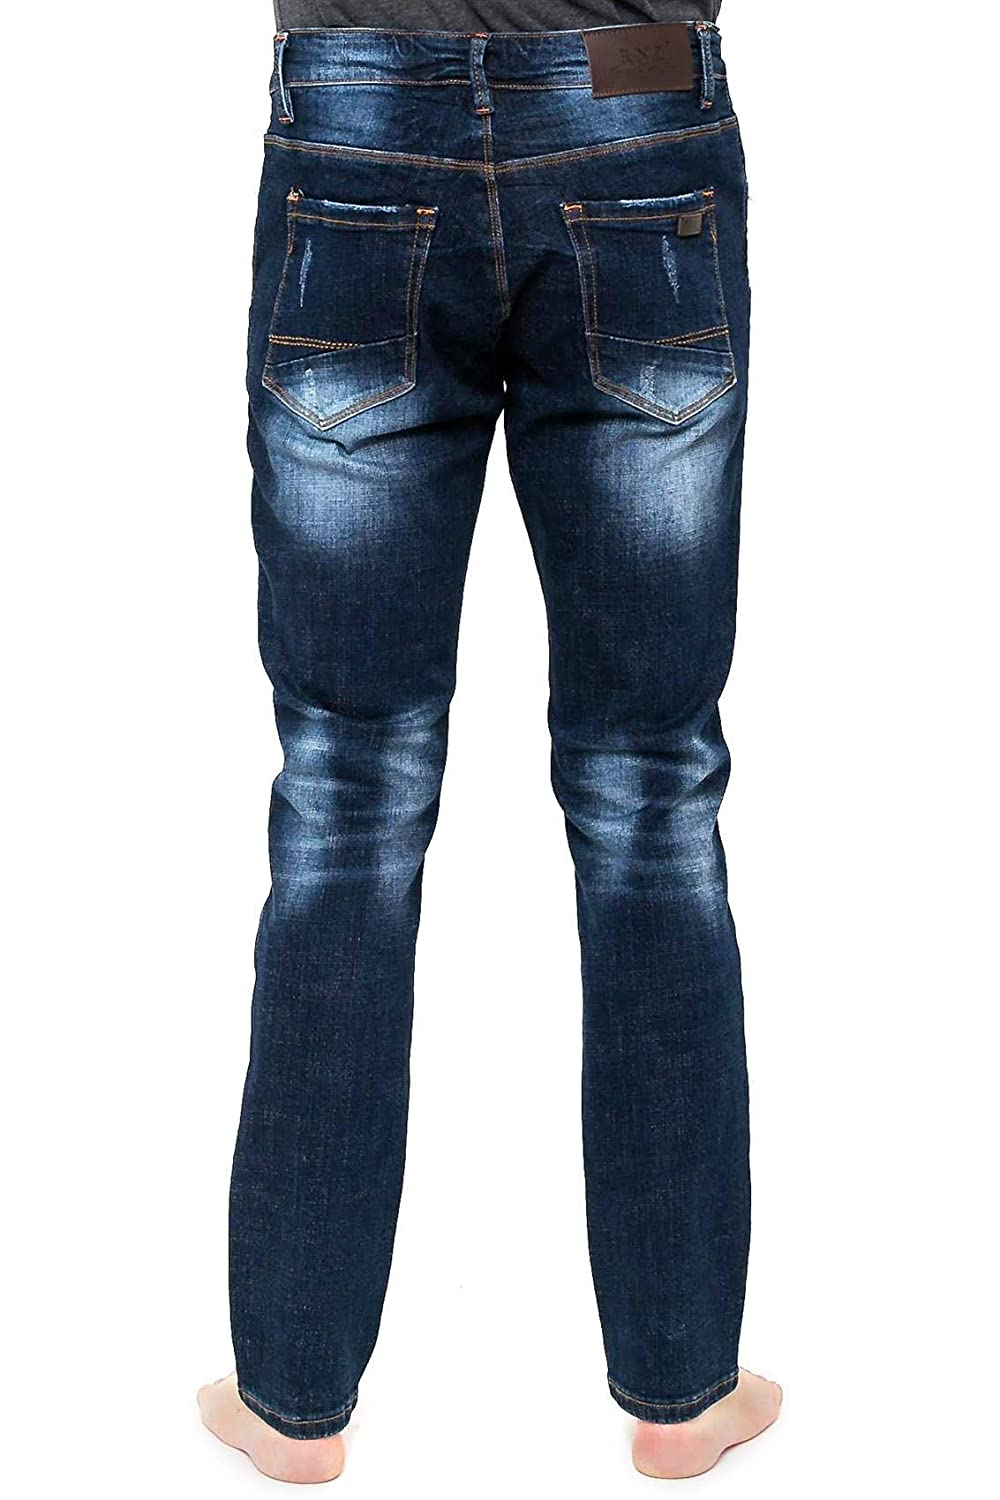 Dark Blue RNZ PREMIUM Mens Slim Straight Fit Jean w Faded Look and Whiskering R734